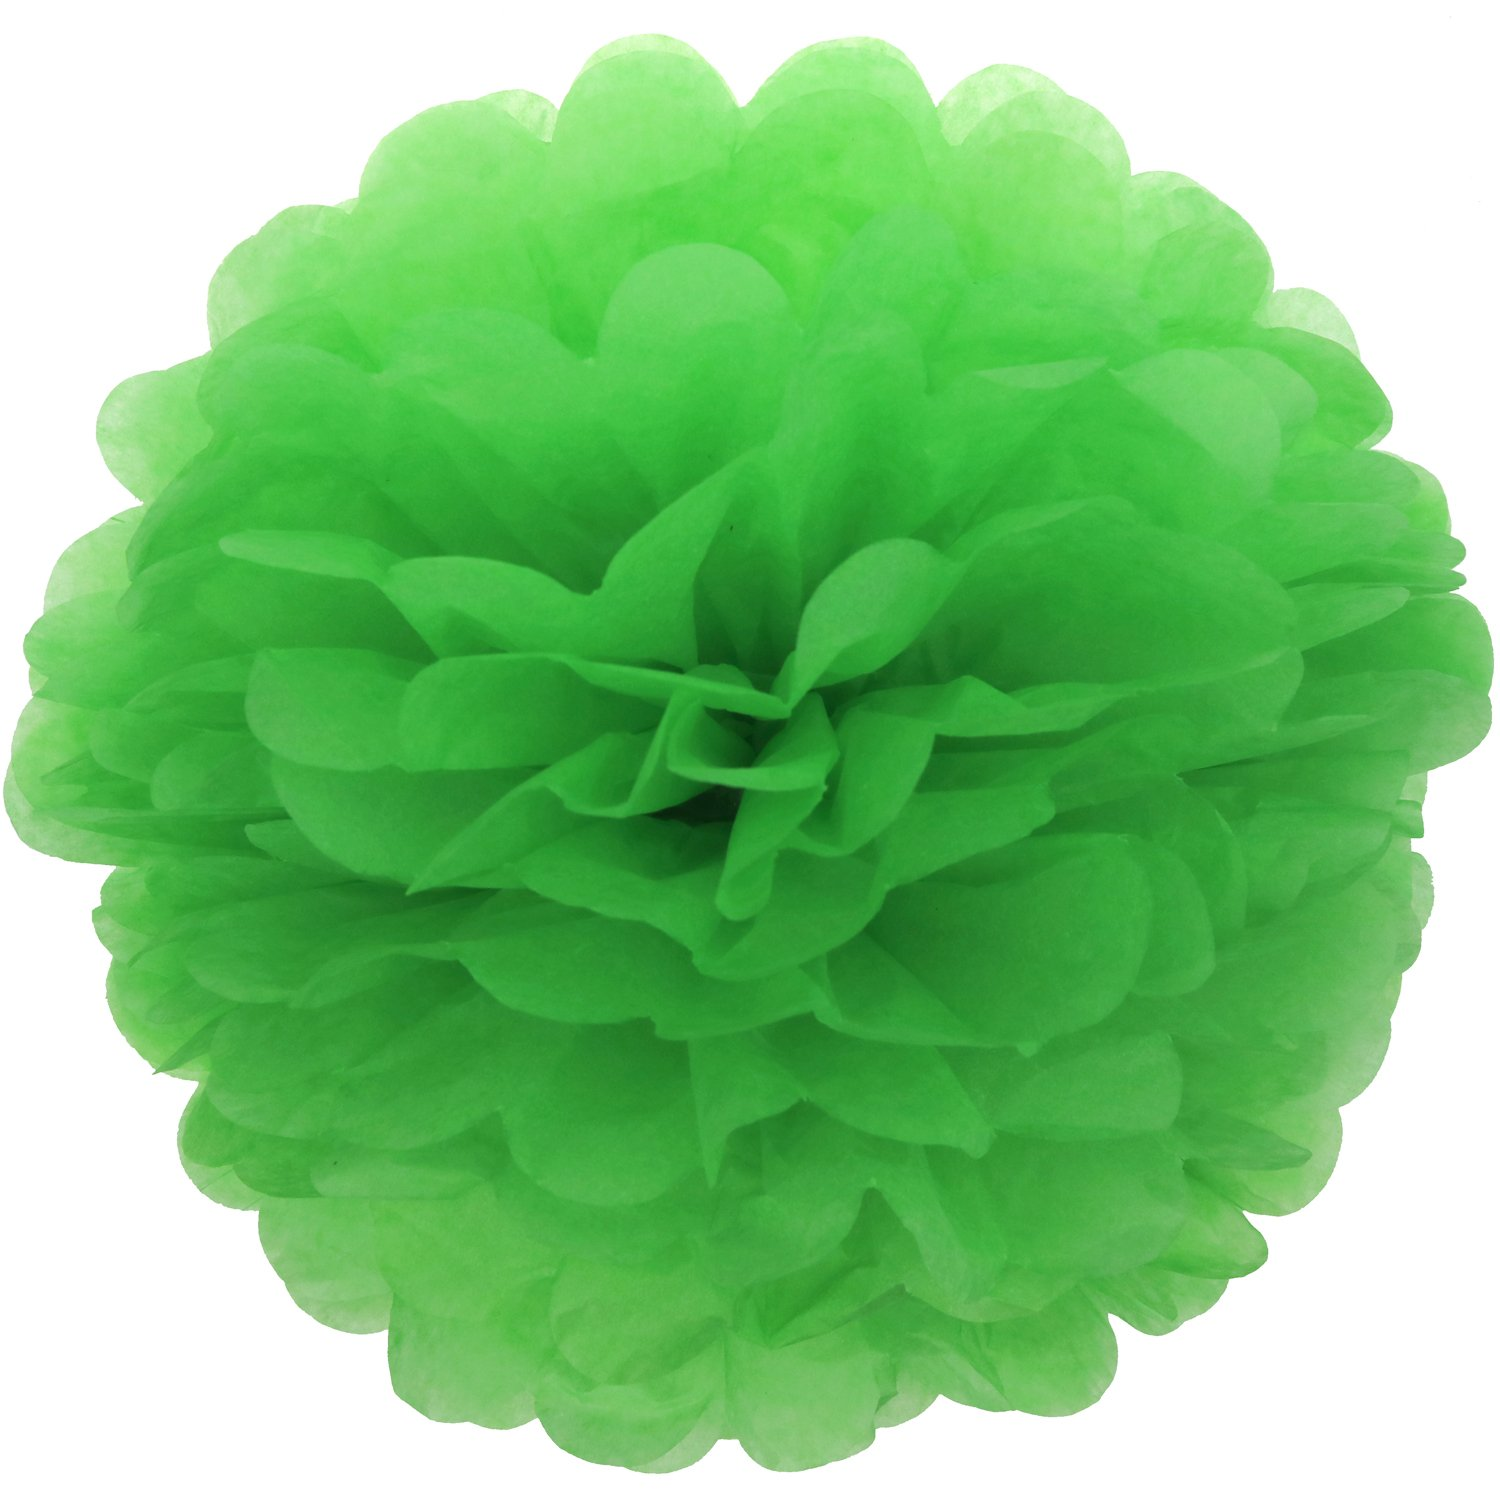 Lightingsky 10pcs Tissue Paper Pom Poms DIY Decorative Flowers Ball Perfect for Party Wedding Home Outdoor Decoration Milky, 6 inch